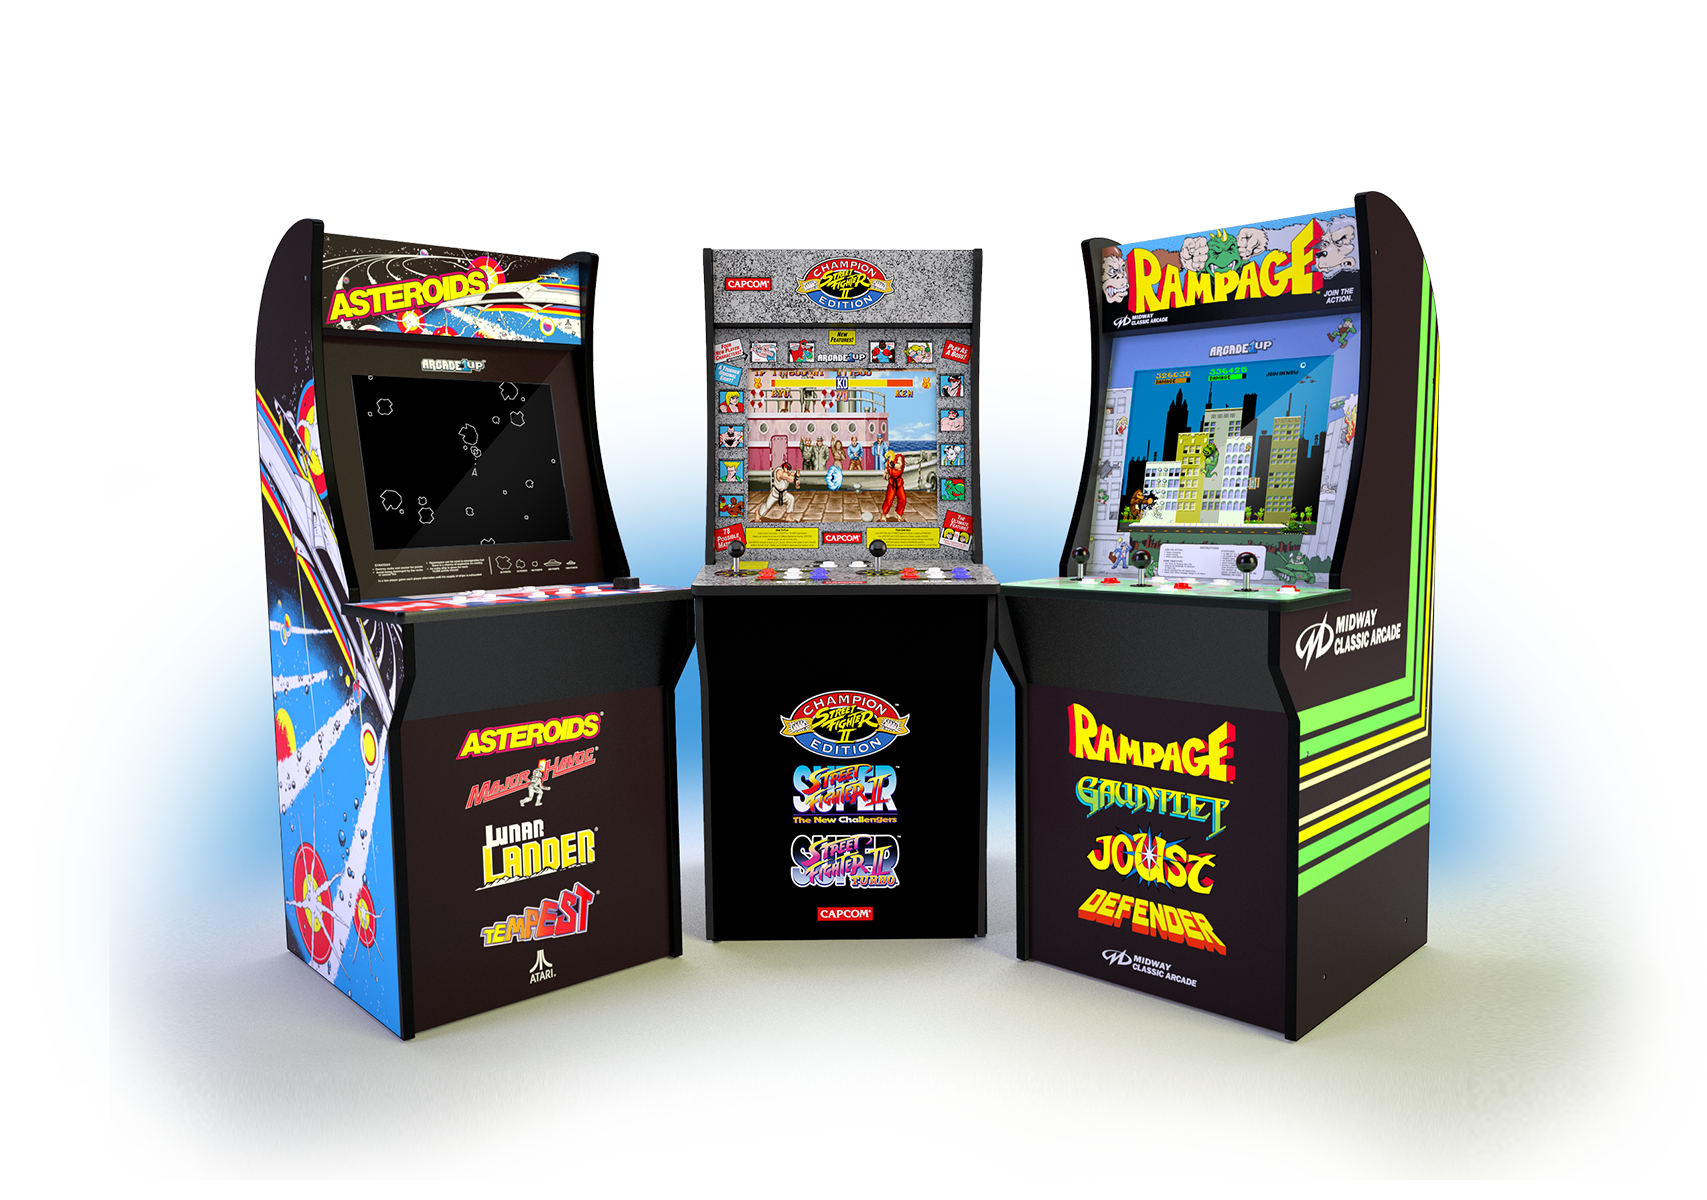 Arcade1Up: Classic Arcade Games For The Home